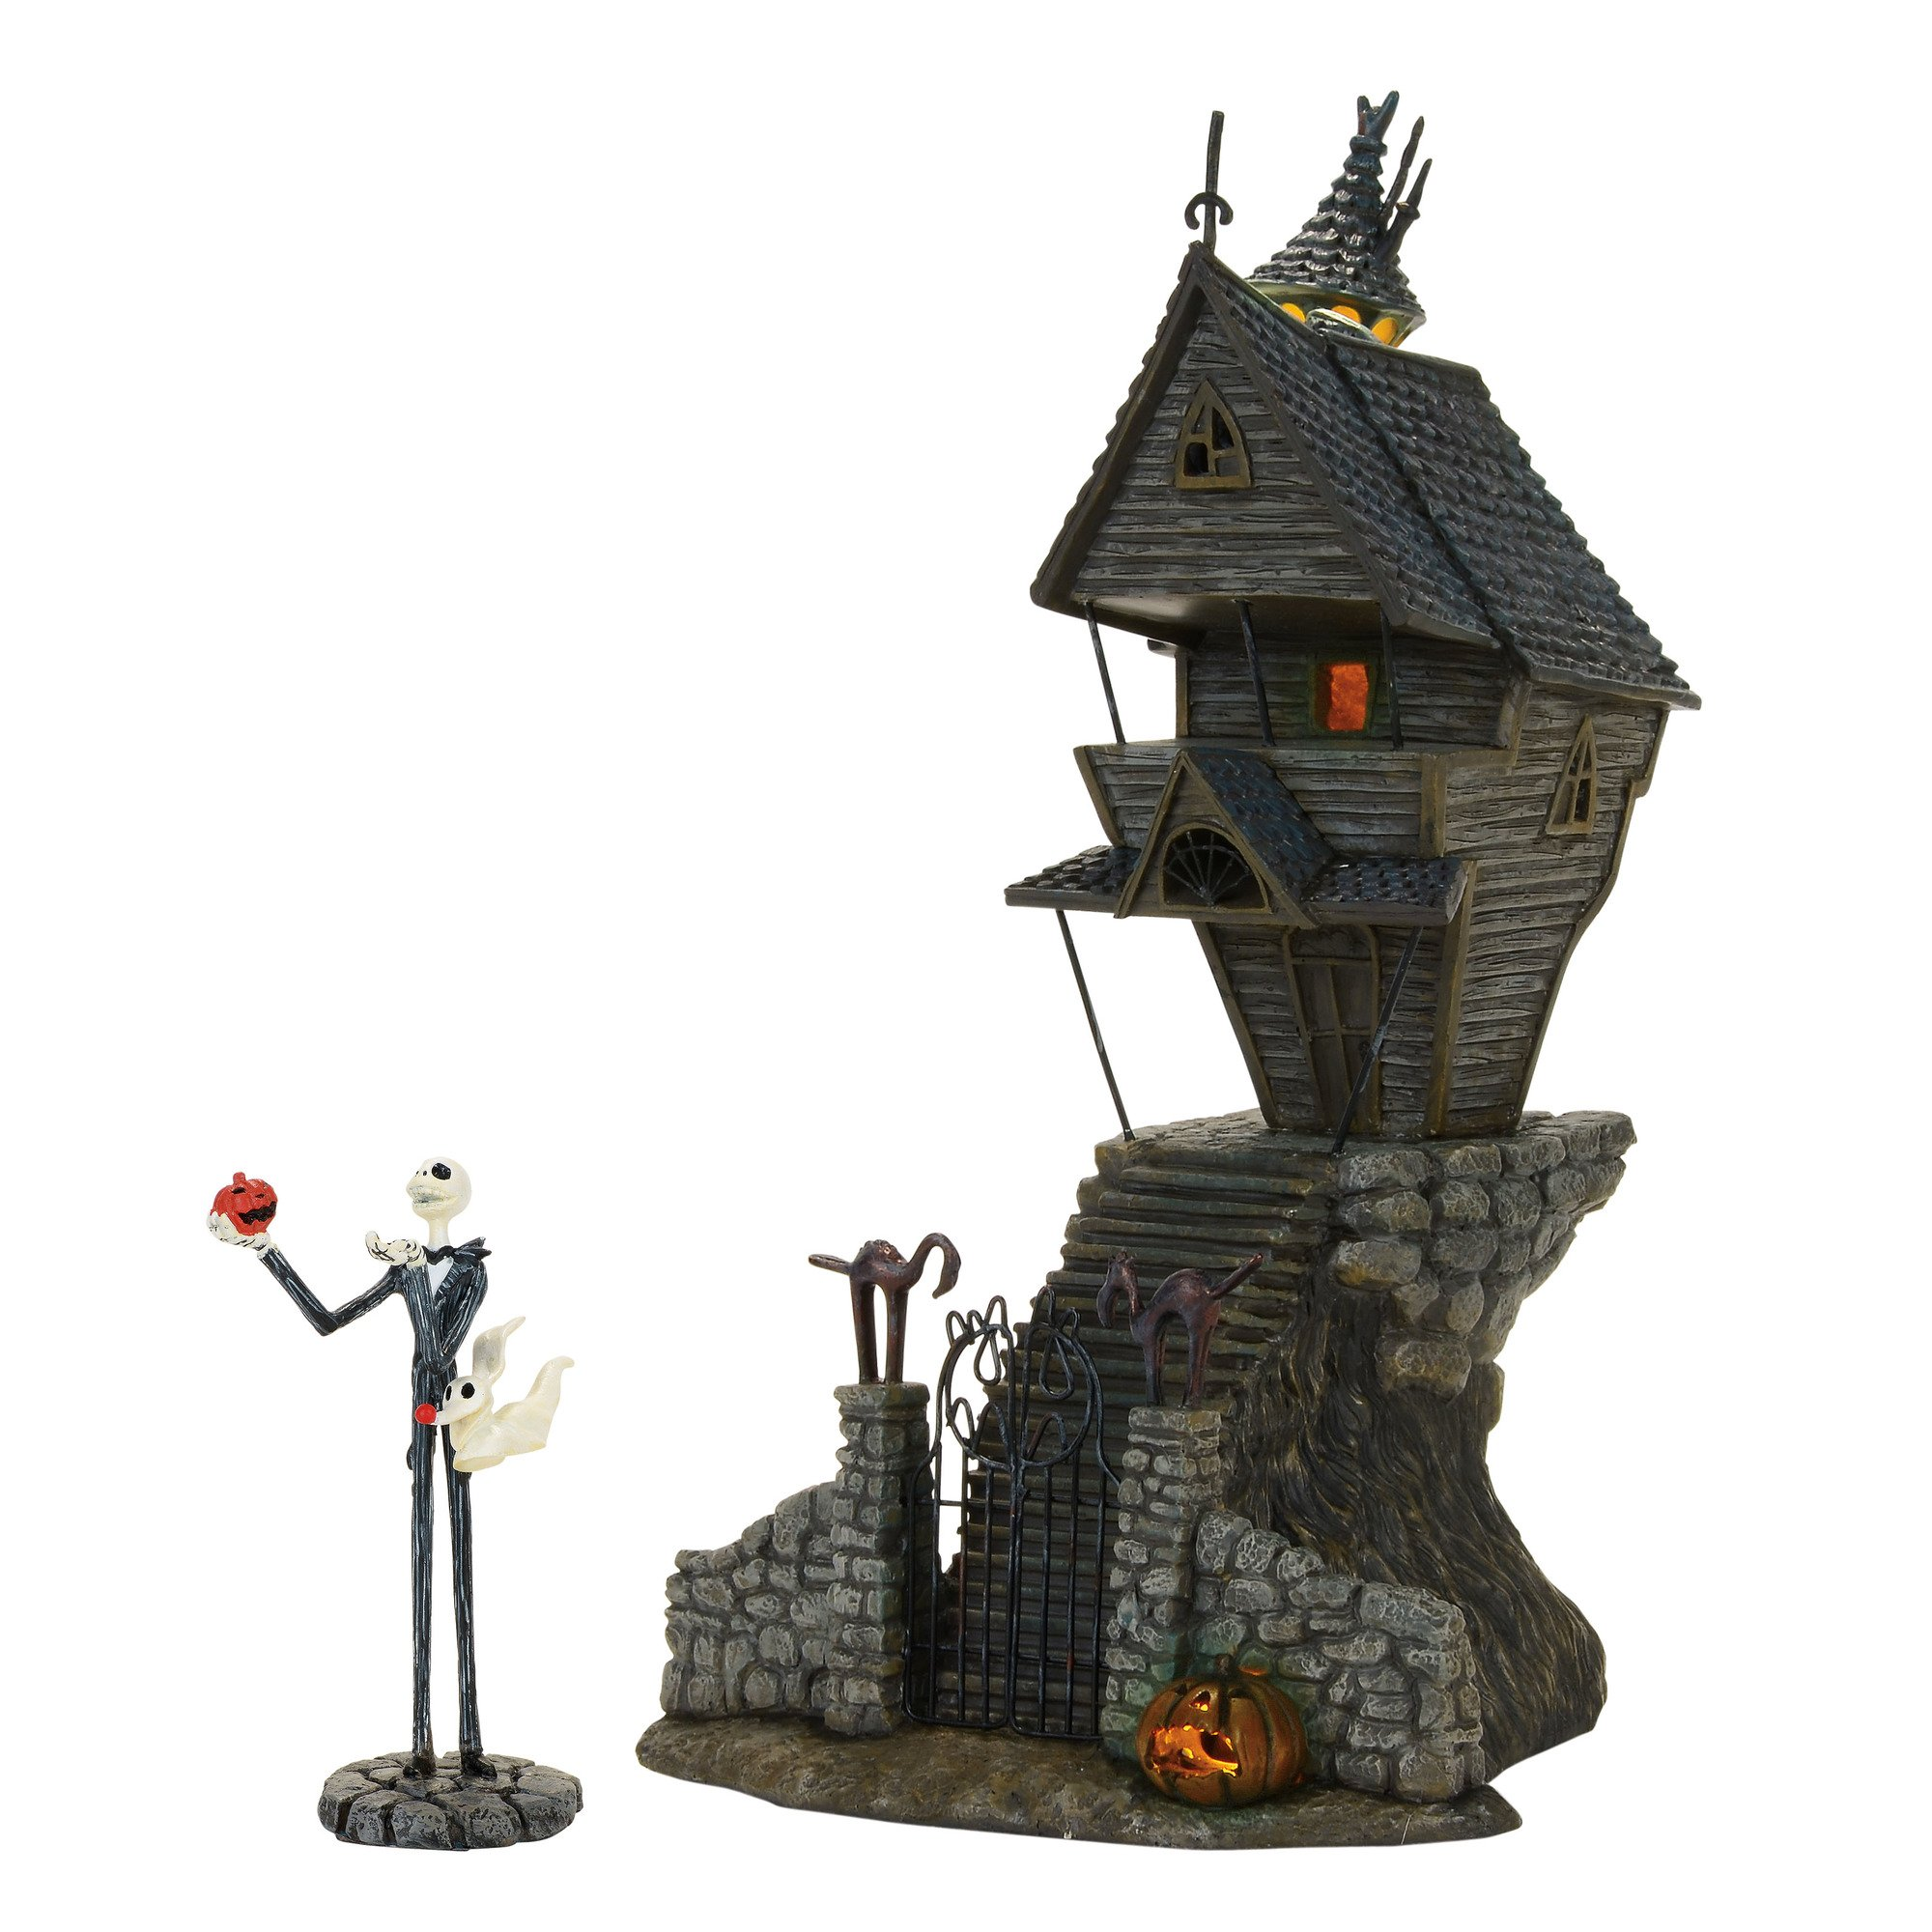 Department 56 Nightmare Before Christmas Village Jack Skellington's Lit House by Department 56